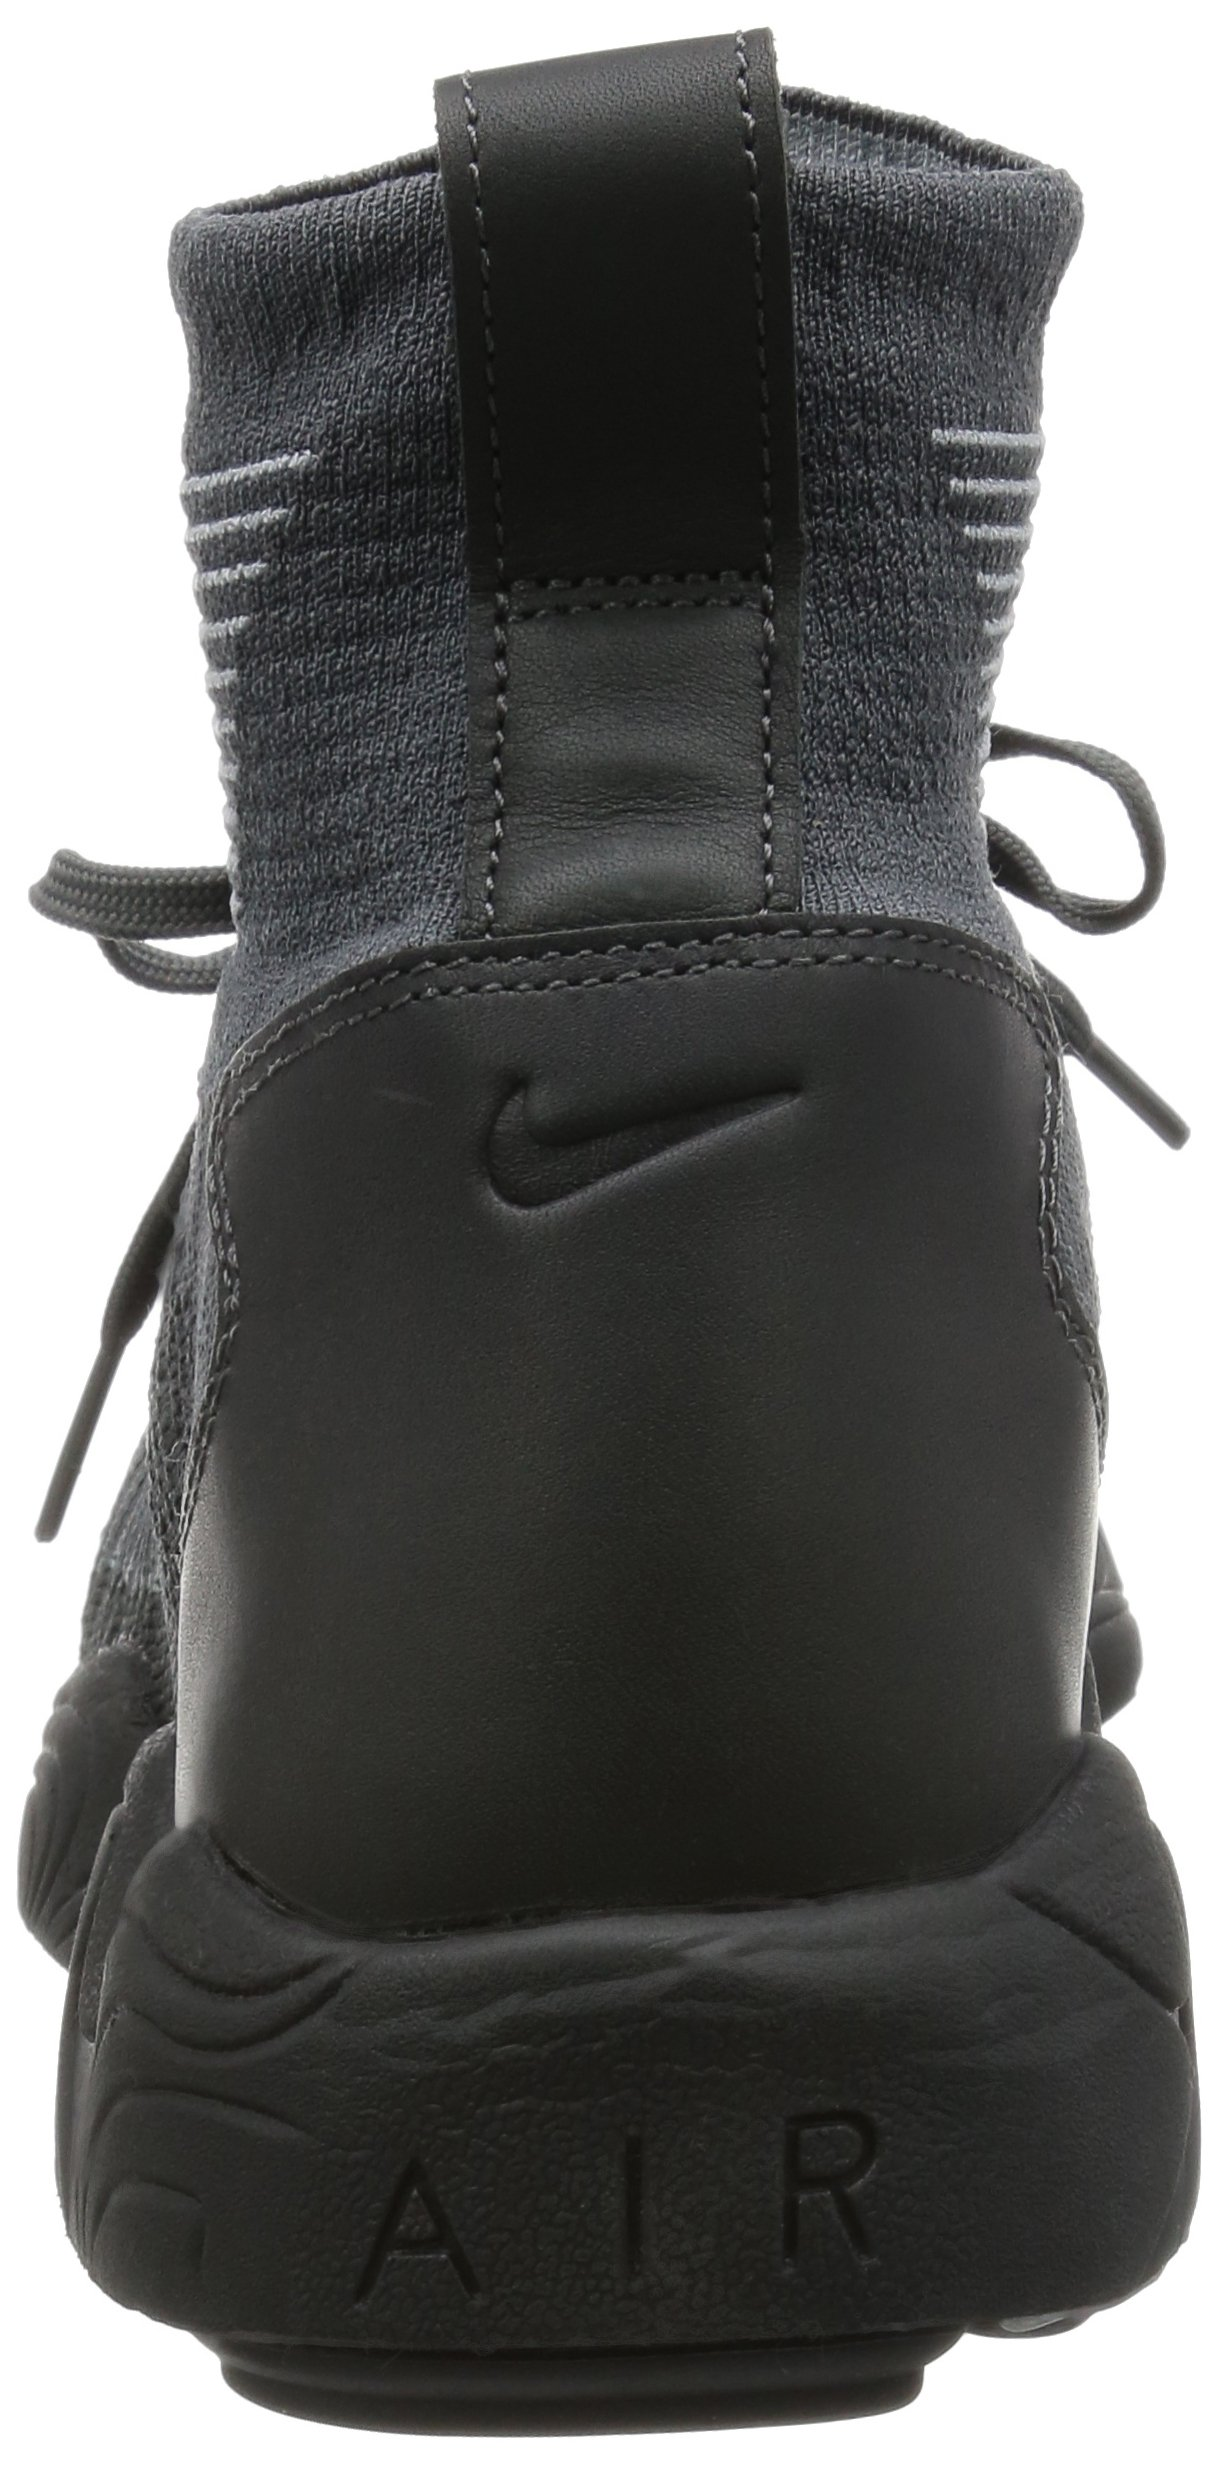 Nike Mens Zoom Mercurial XI FK Dark Grey/Anthracite Fabric Size 11 by NIKE (Image #2)